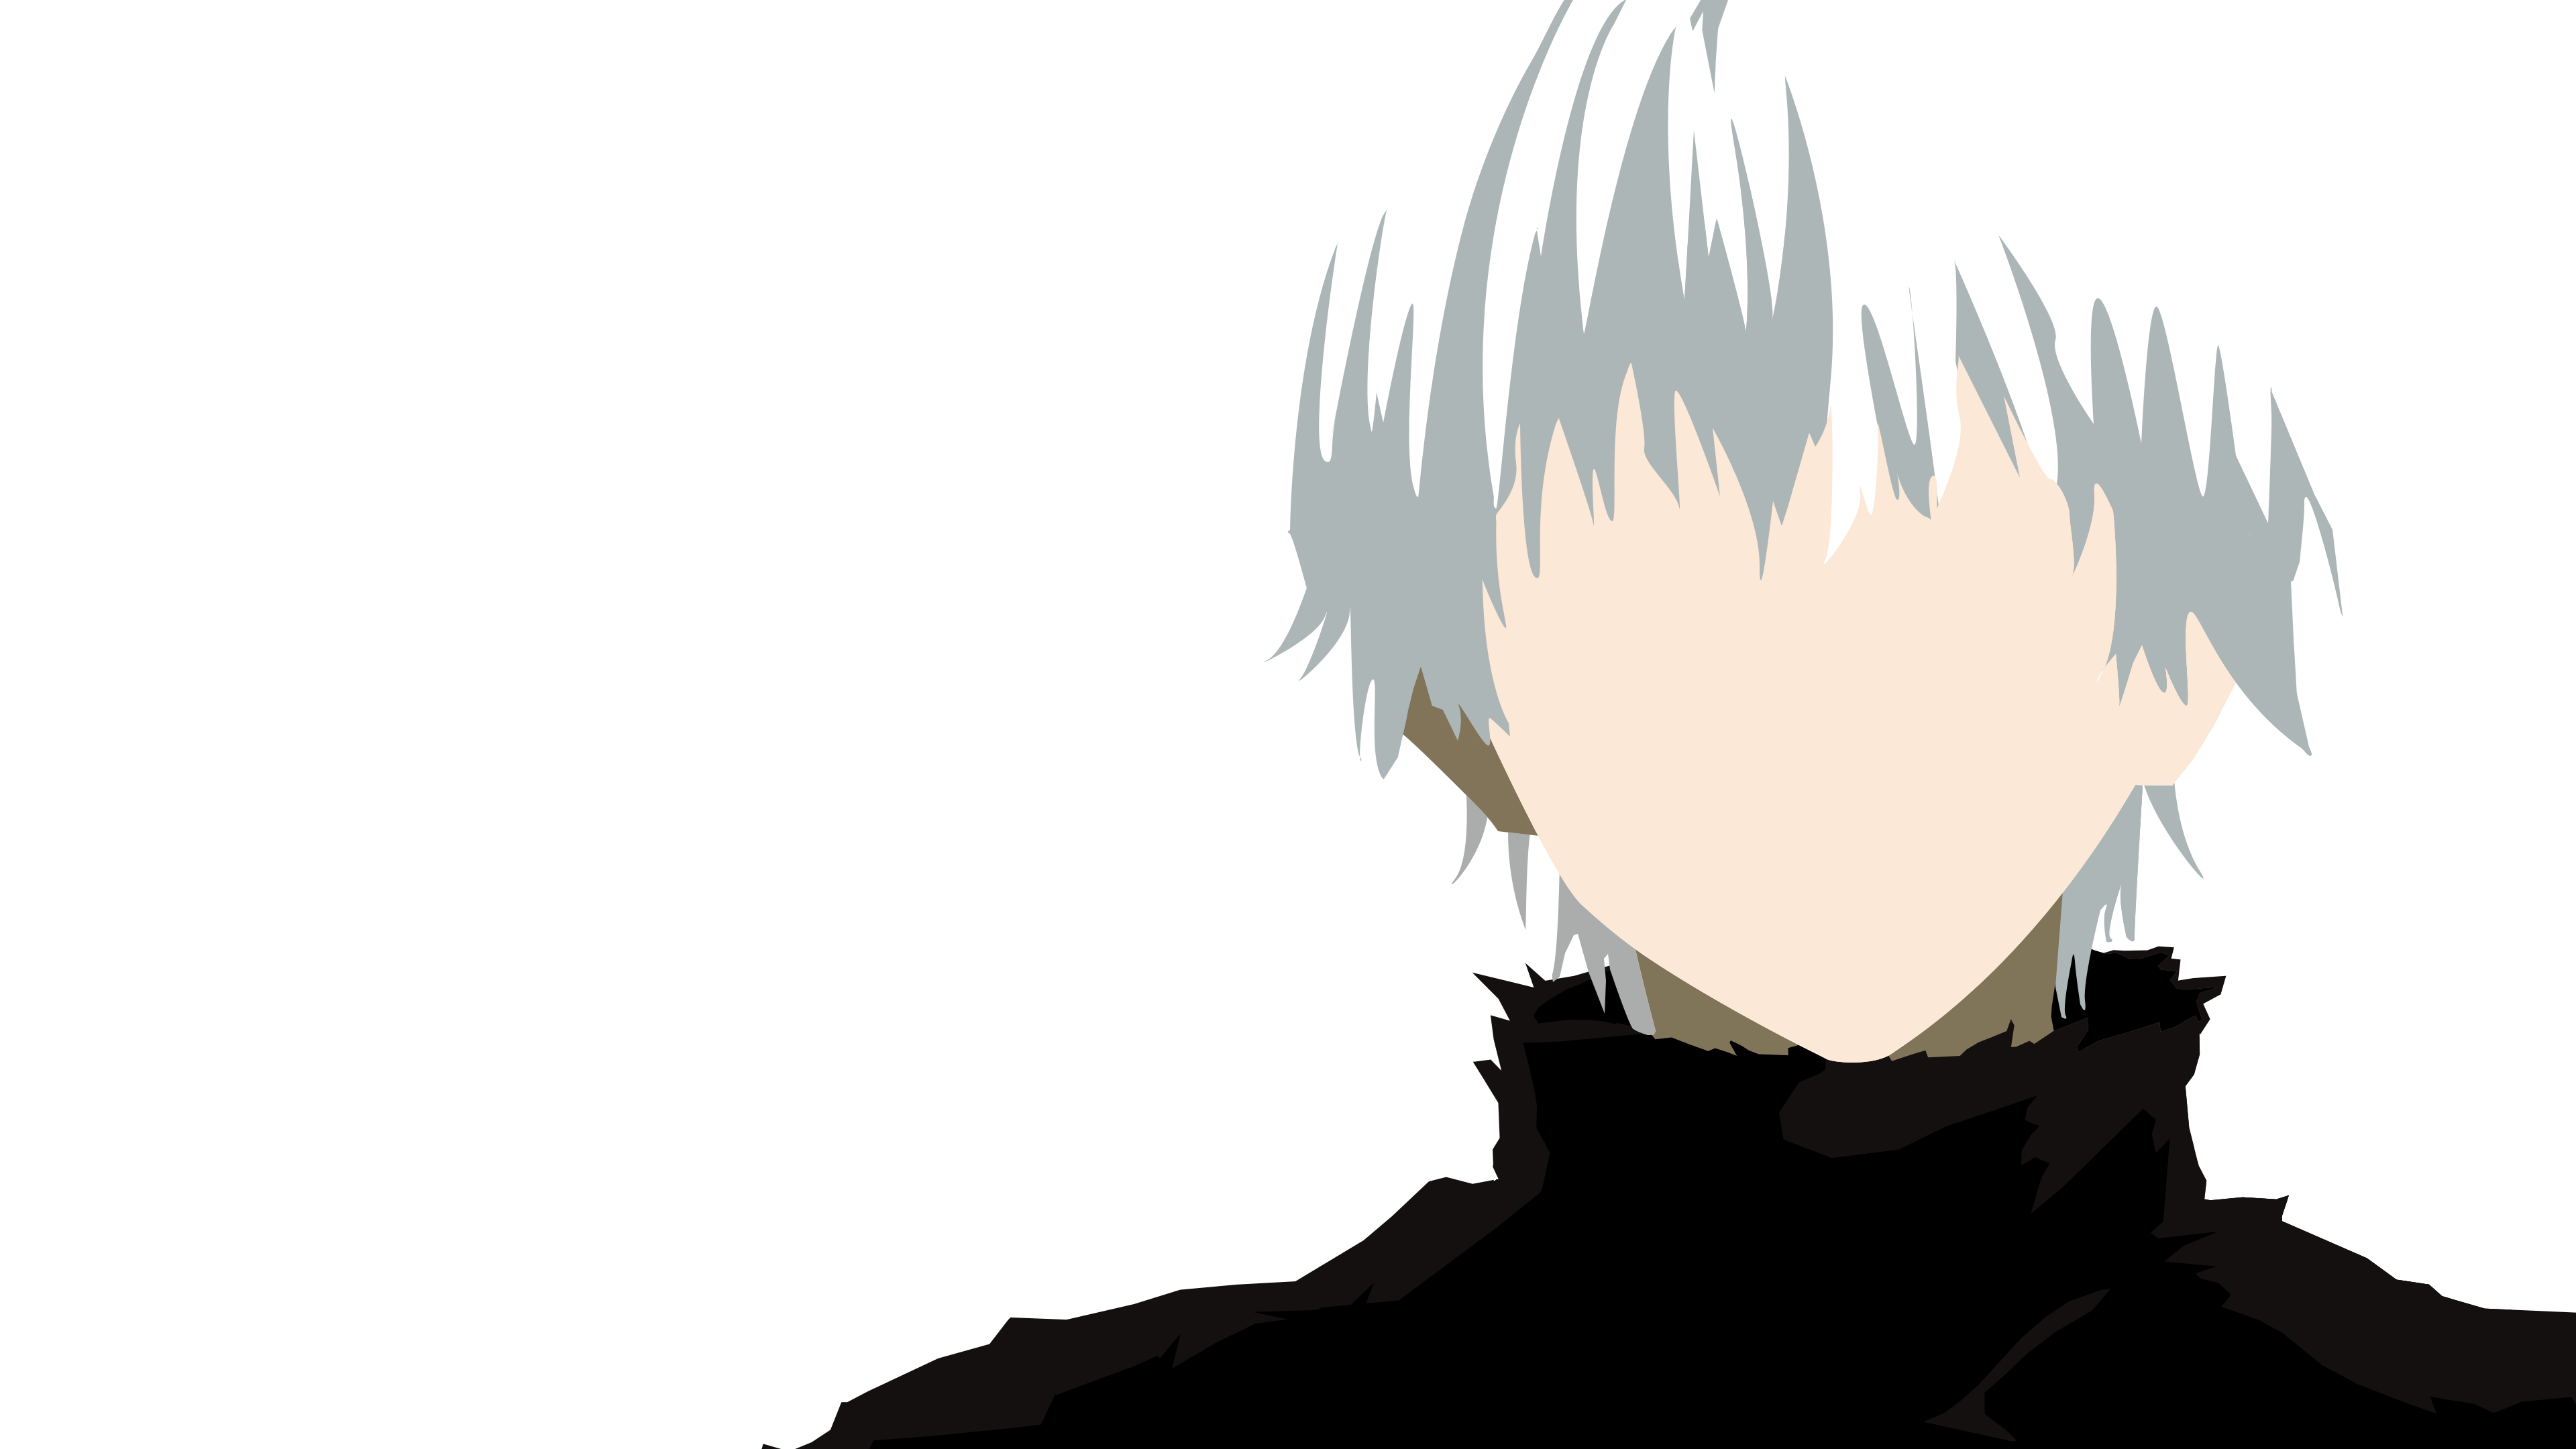 Kaneki 4k Ultra HD Wallpaper | Background Image ...